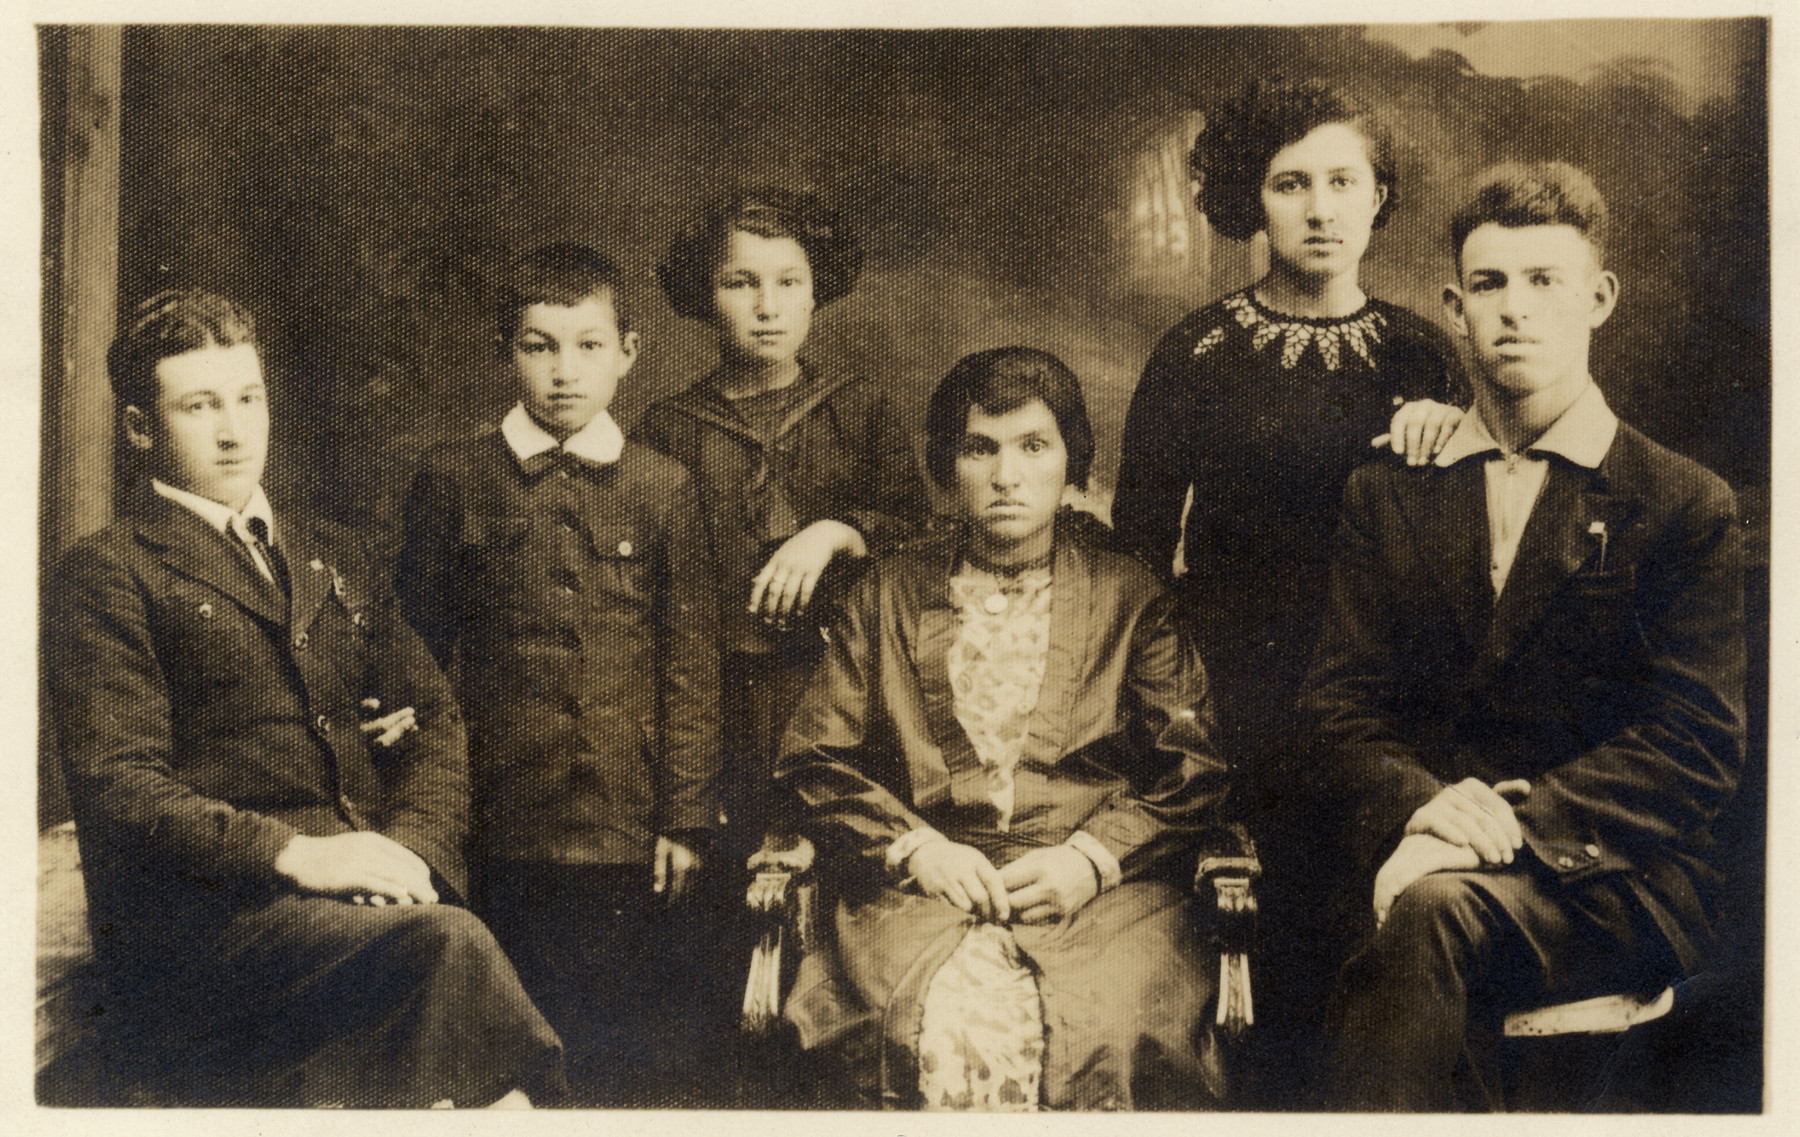 Prewar studio portrait of the Feldman family in Sokolow Podlaski.  Seated from left: Mendel, Moishe Velvel, Surah Rifka, Chinka Schwartzburt Feldman (their mother), Shoshana and Fischel Feldman.